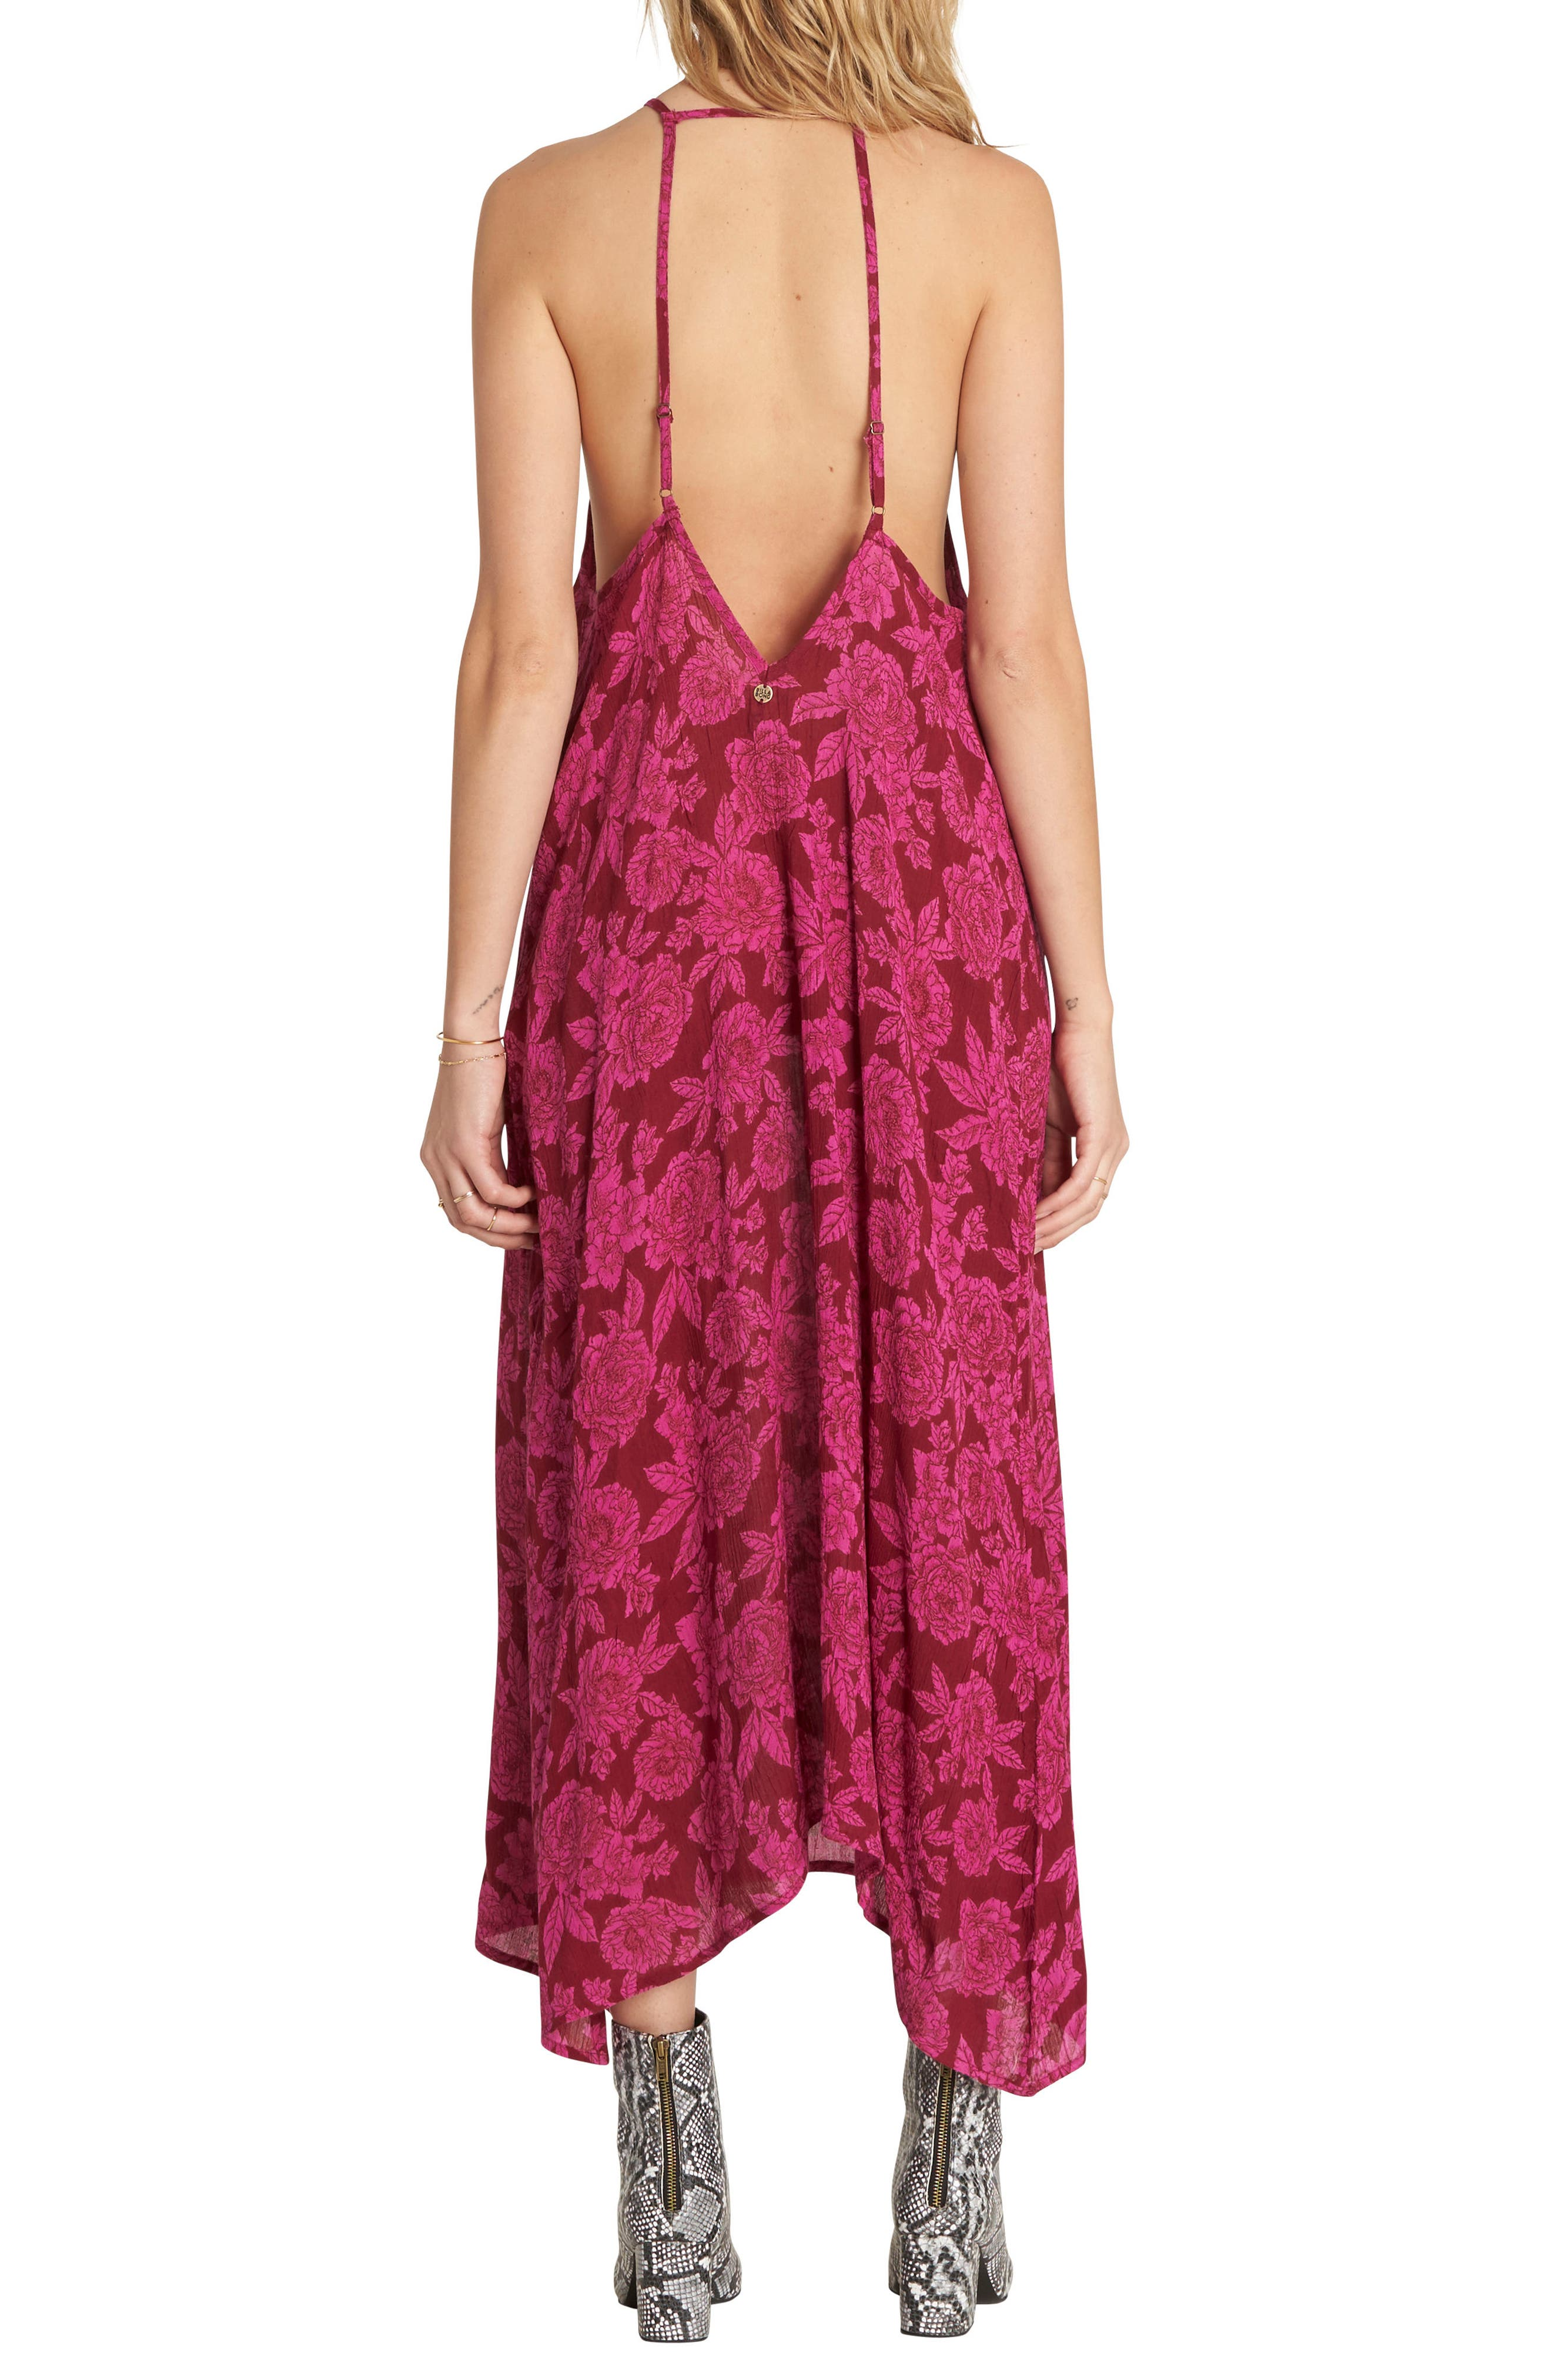 Dream to Dream Maxi Dress,                             Alternate thumbnail 2, color,                             600